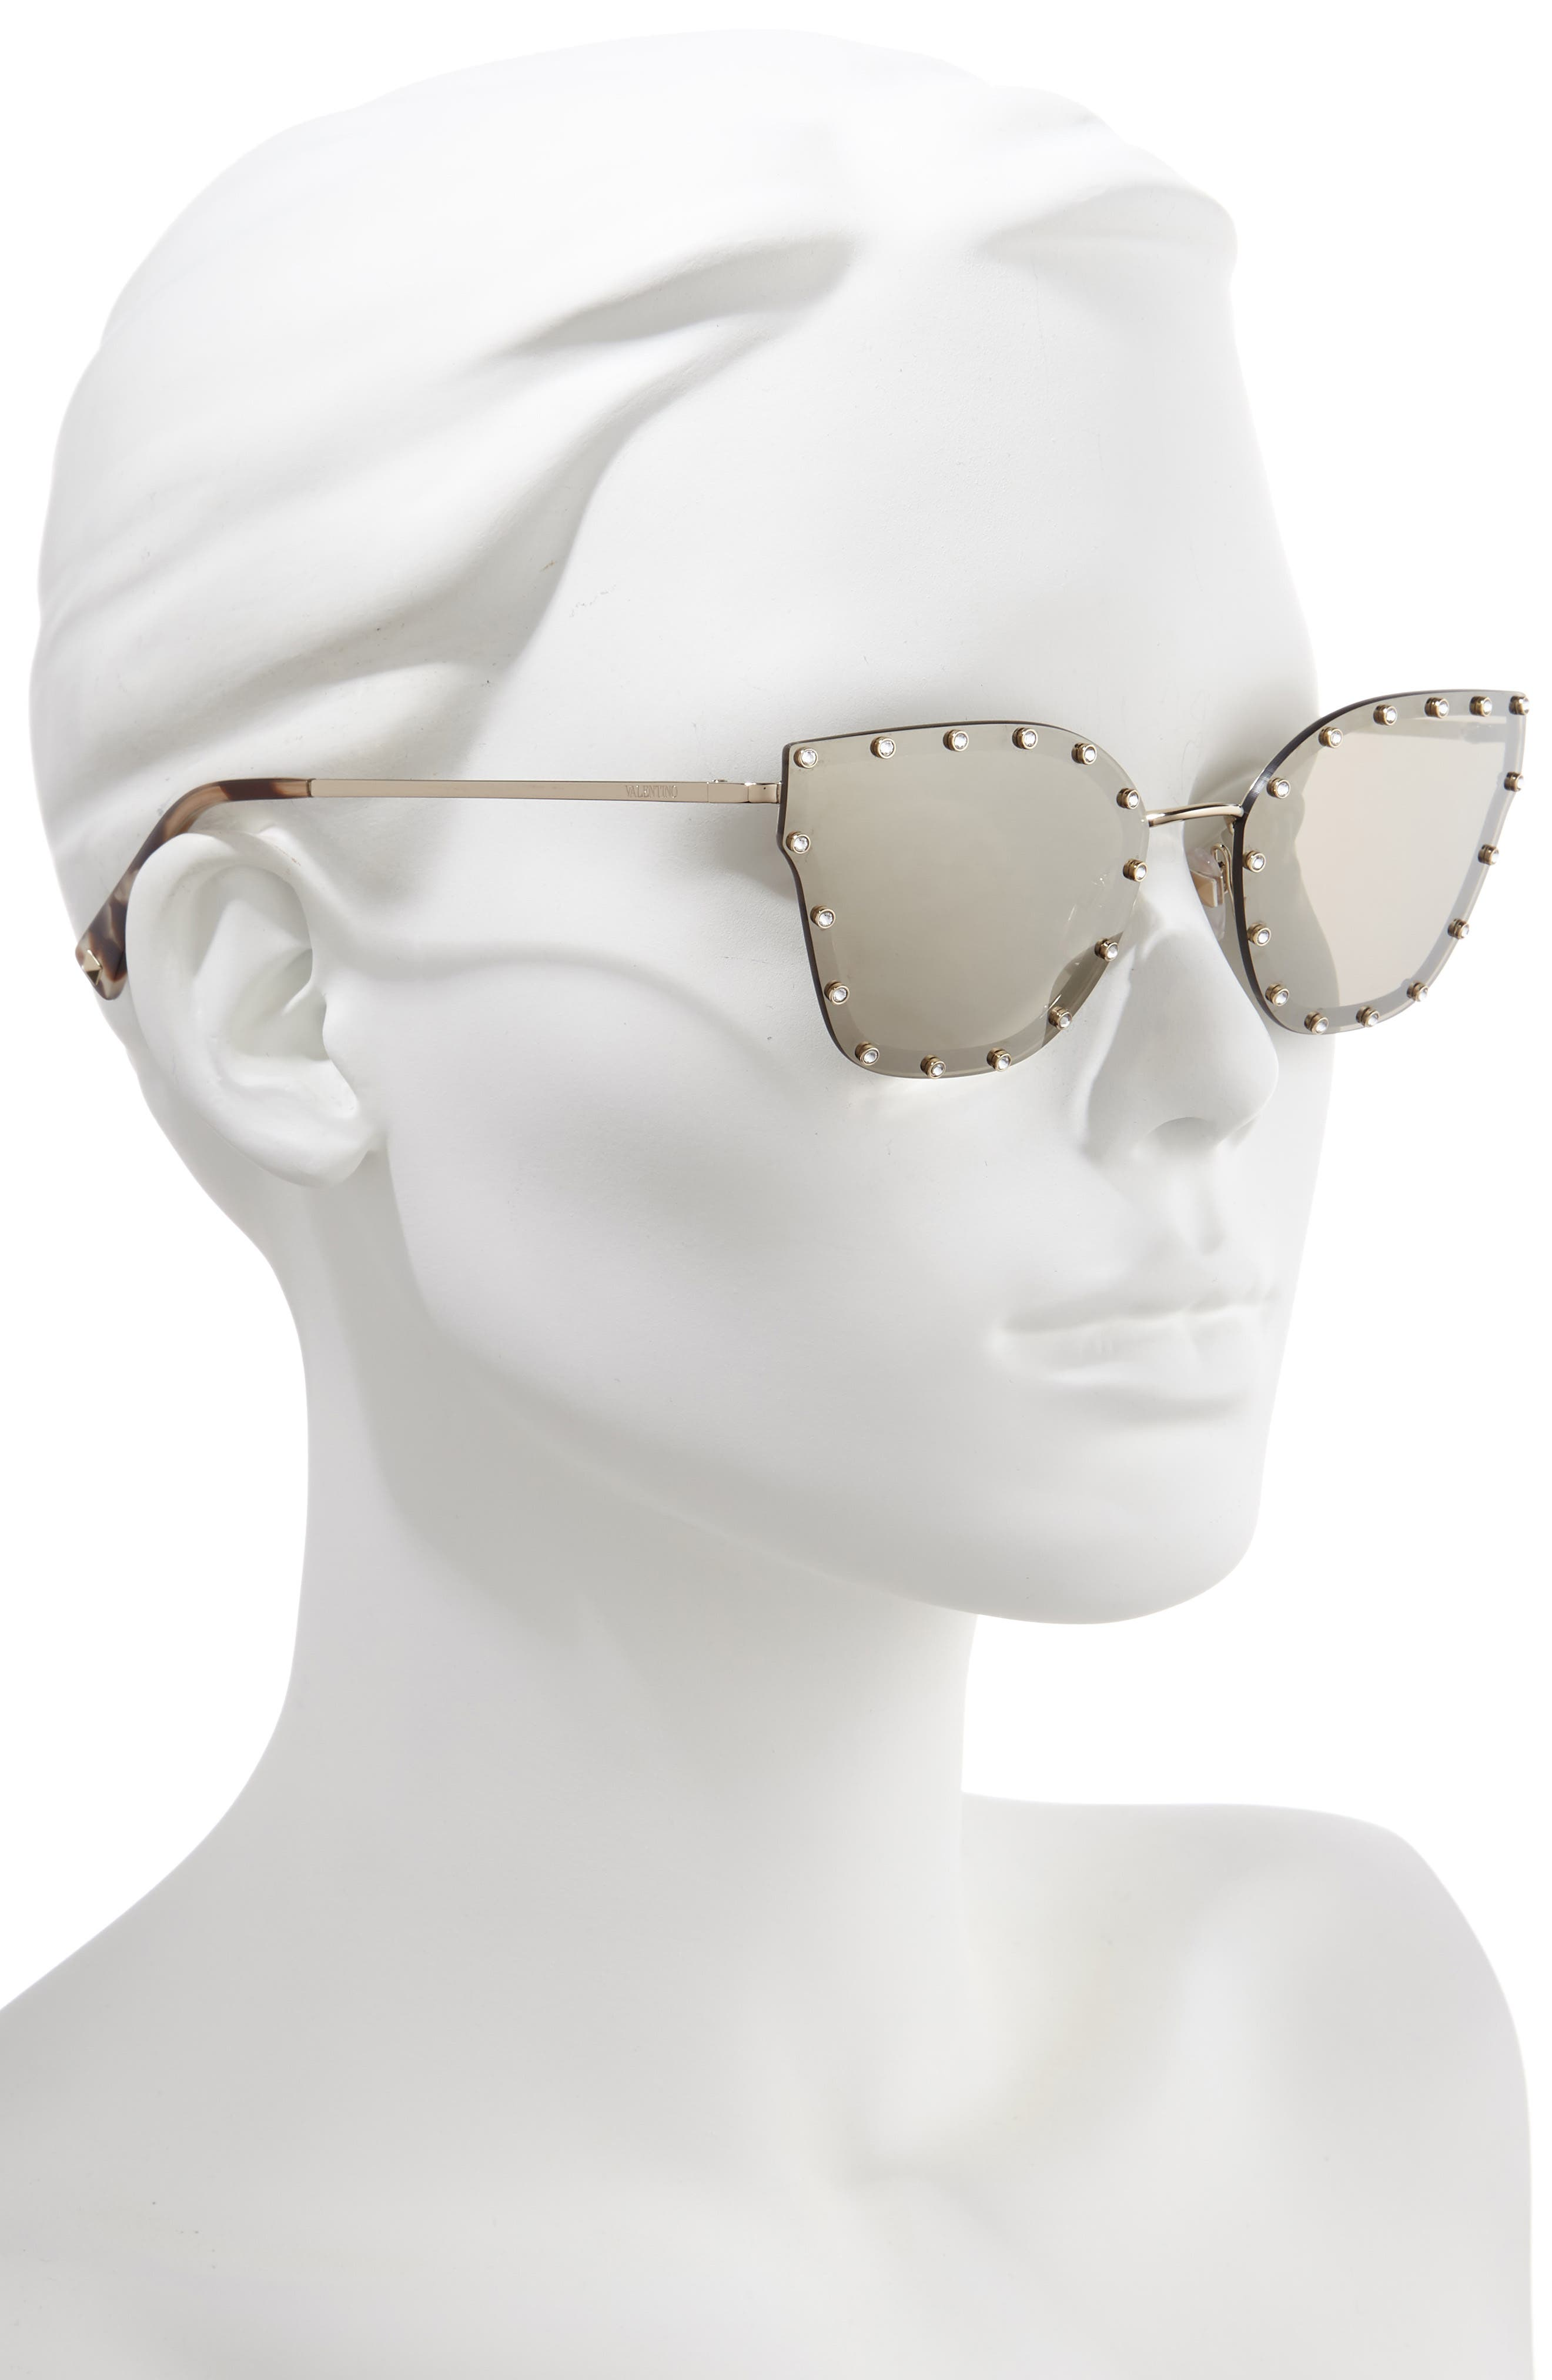 VALENTINO,                             59mm Cat Eye Sunglasses,                             Alternate thumbnail 2, color,                             LIGHT GOLD/ GOLD